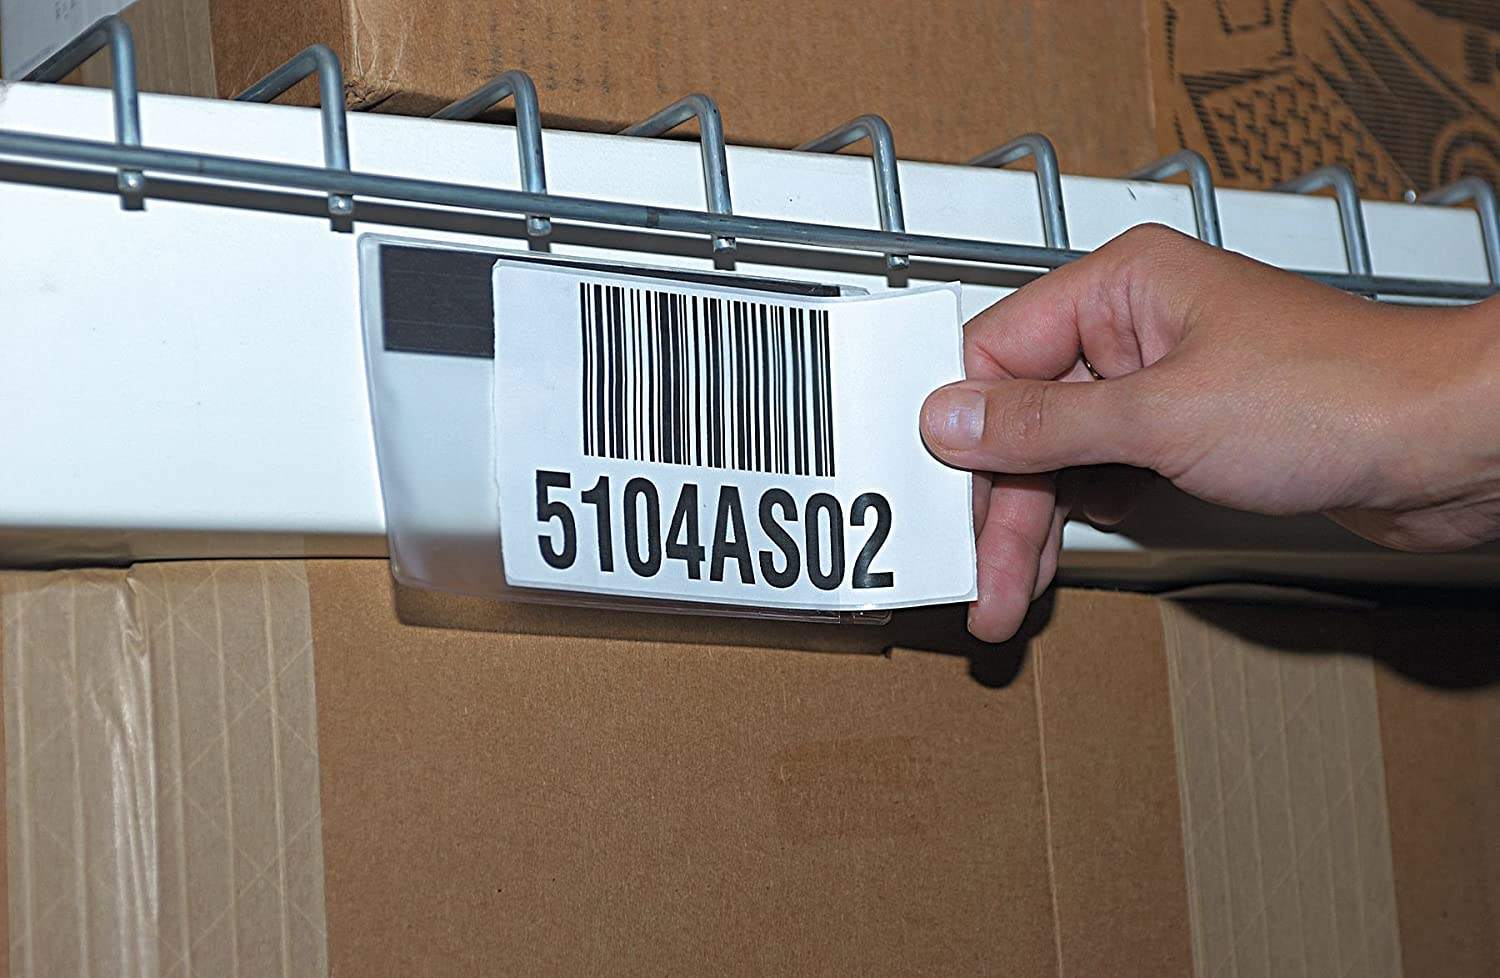 SuperScan SS-912 Label Holders 12